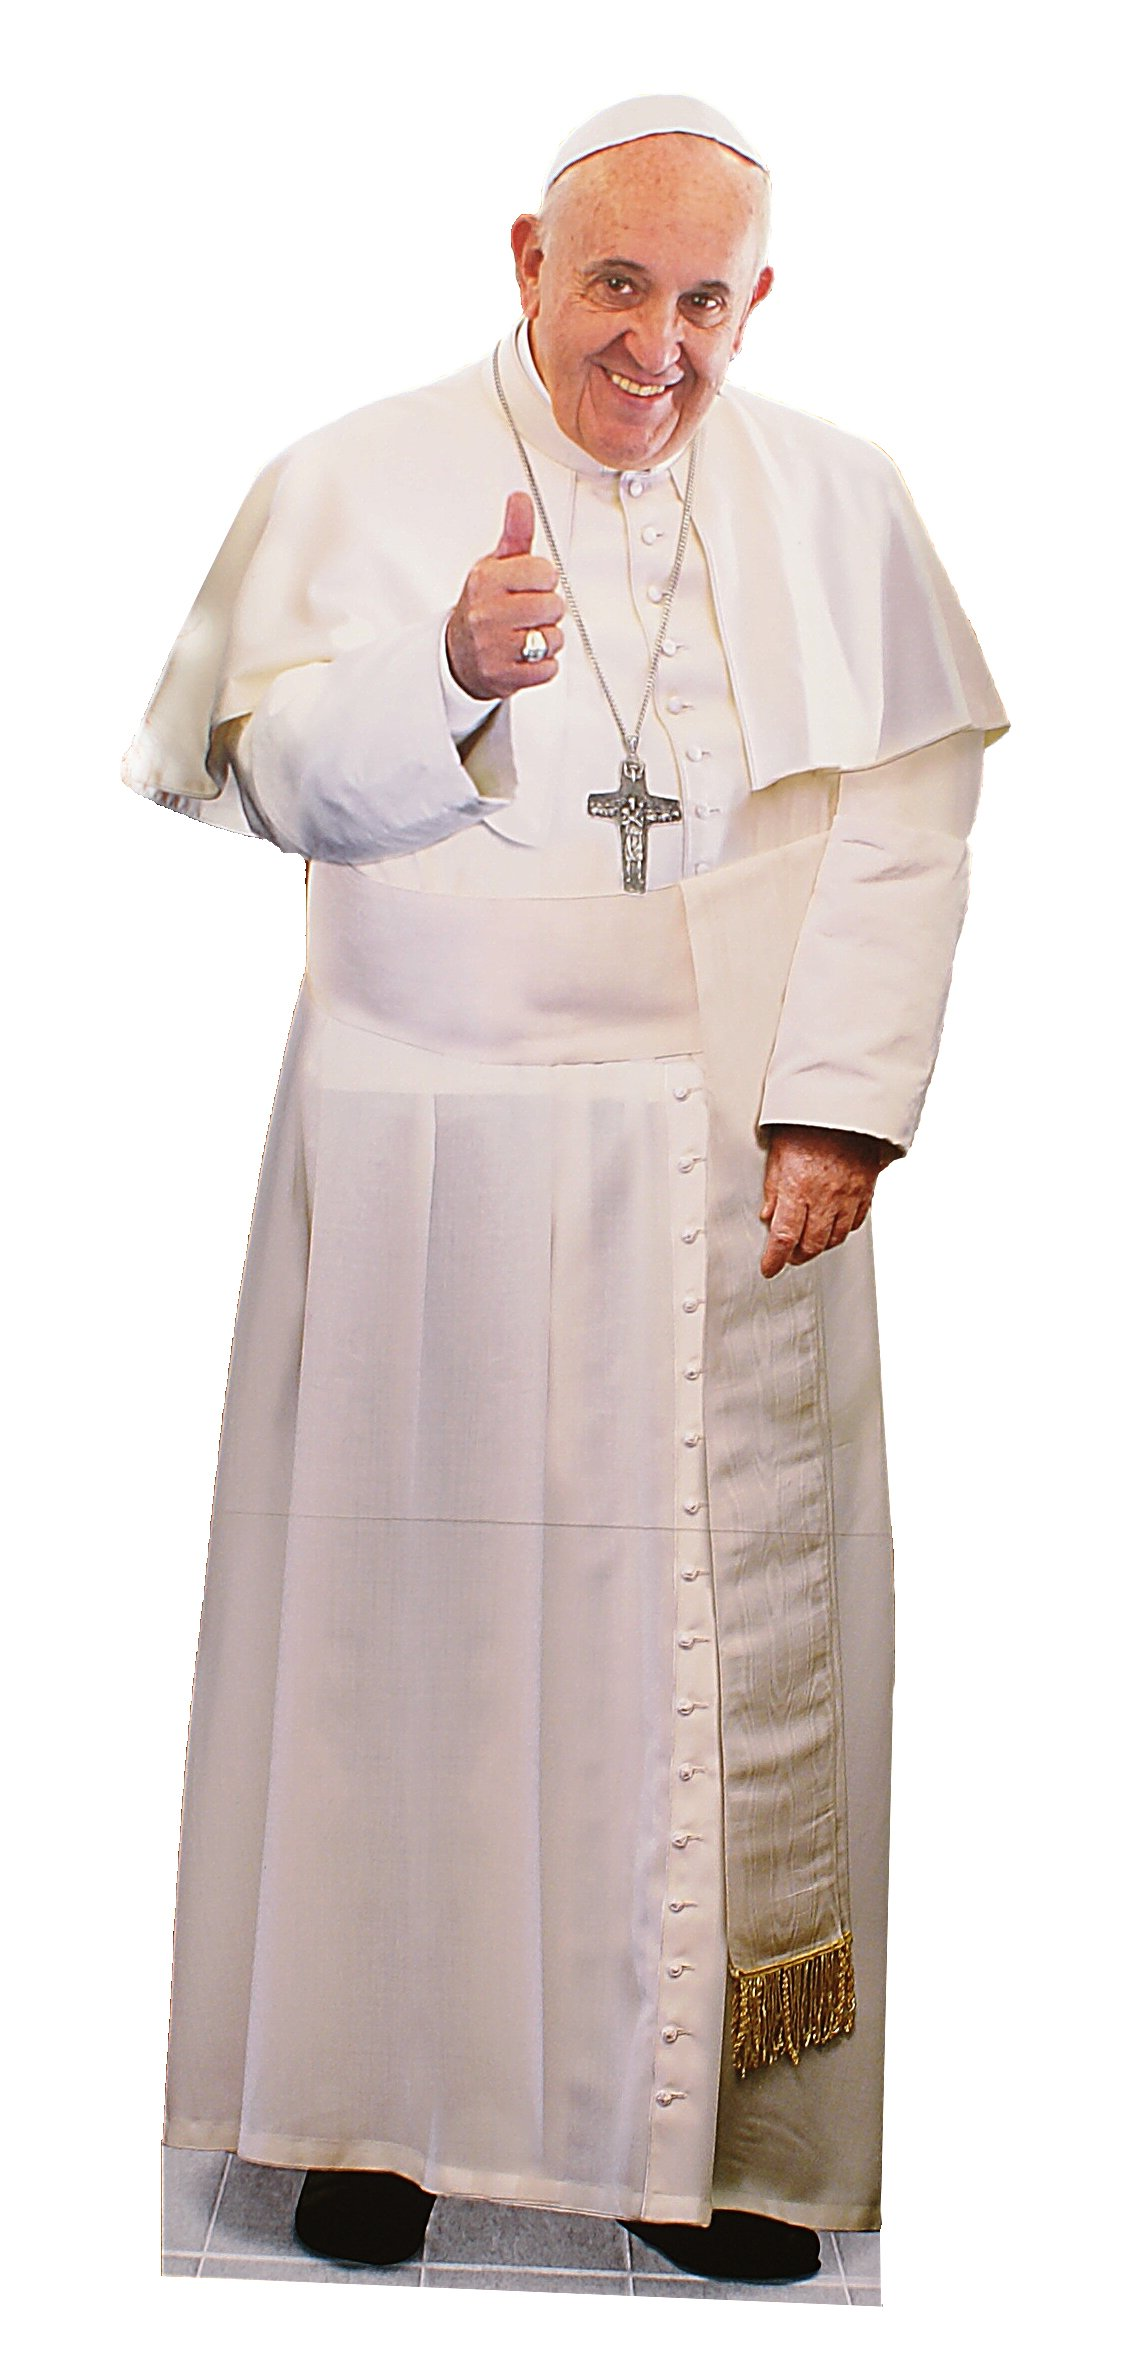 Pope Francis Thumps Up Lifesize Cutout Standee